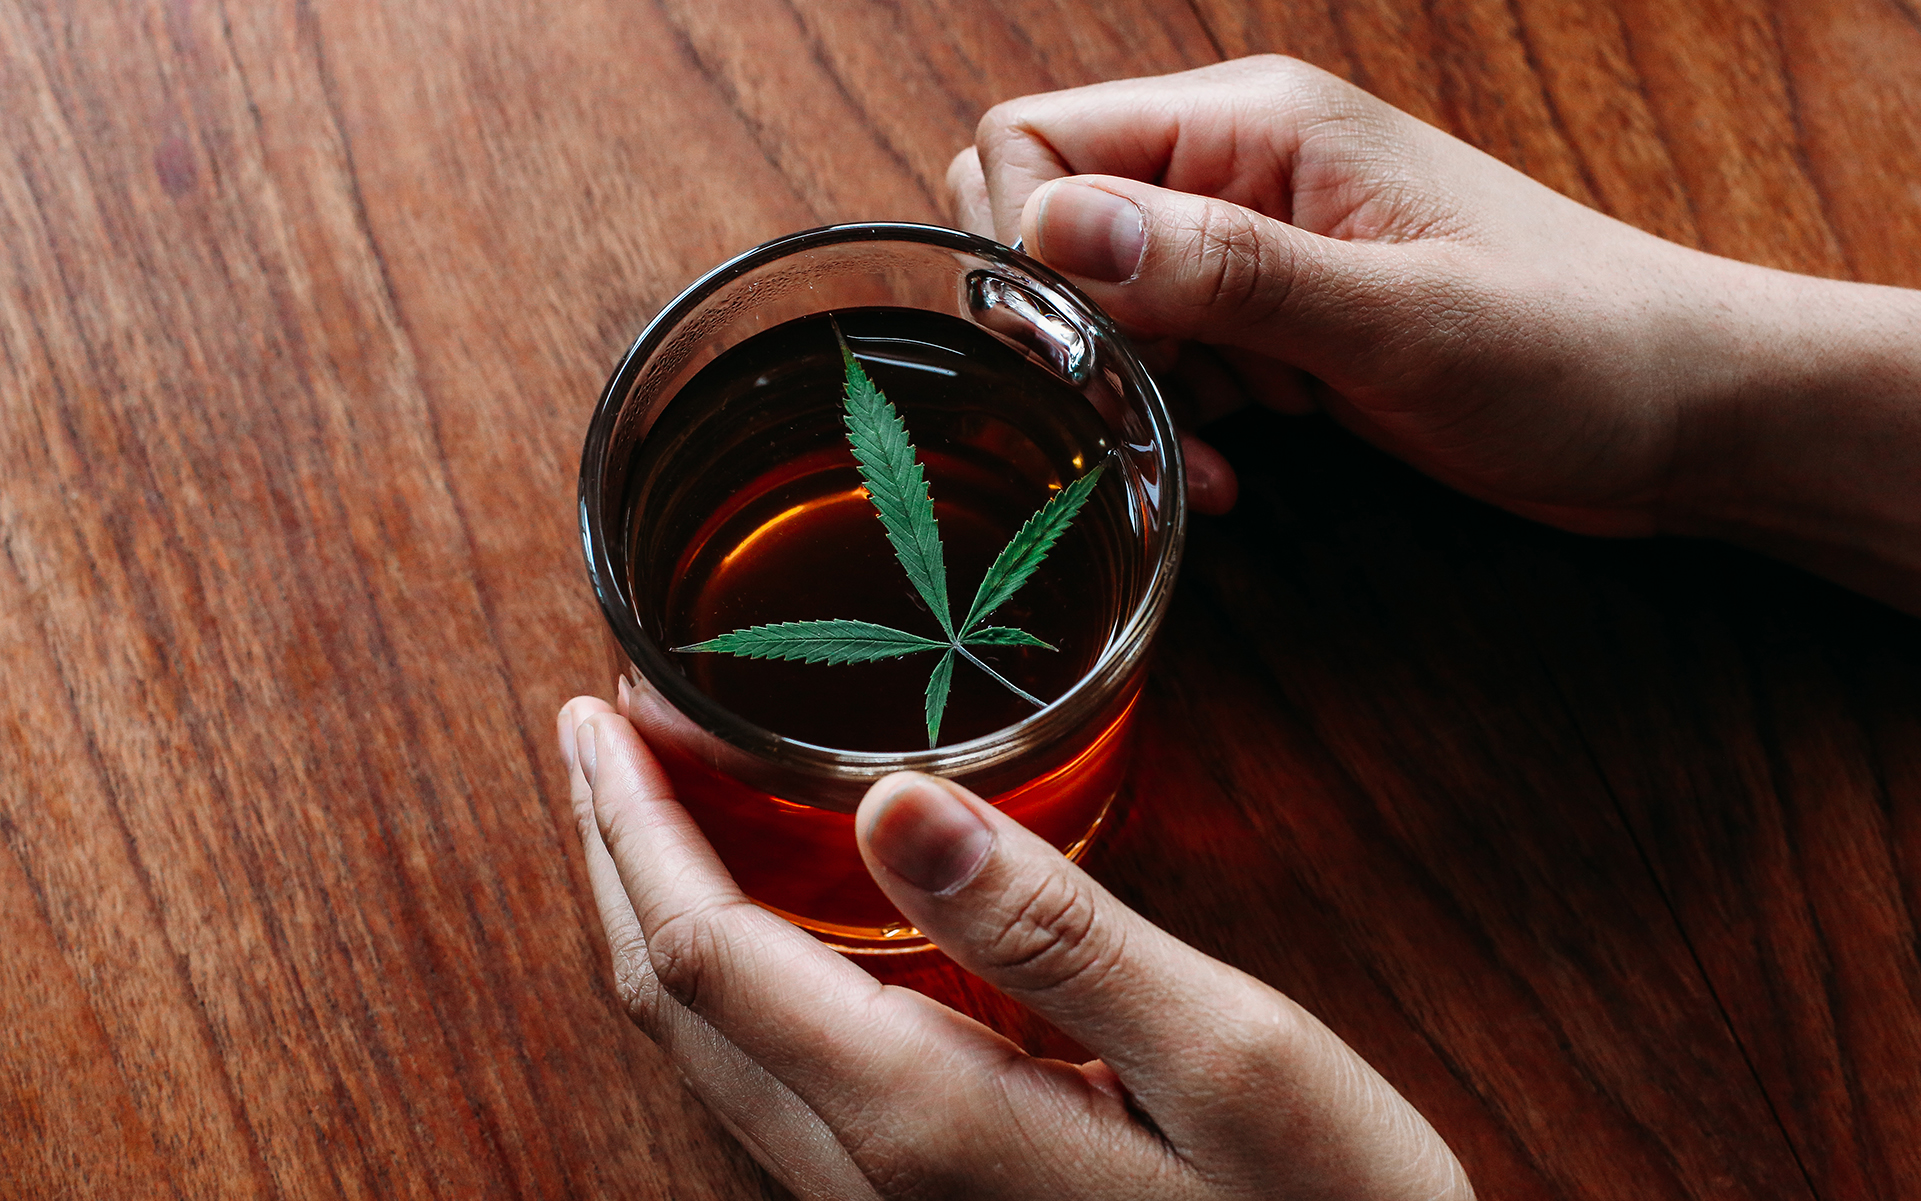 Recipe: How To Make Cannabis Infused Tea | Leafly